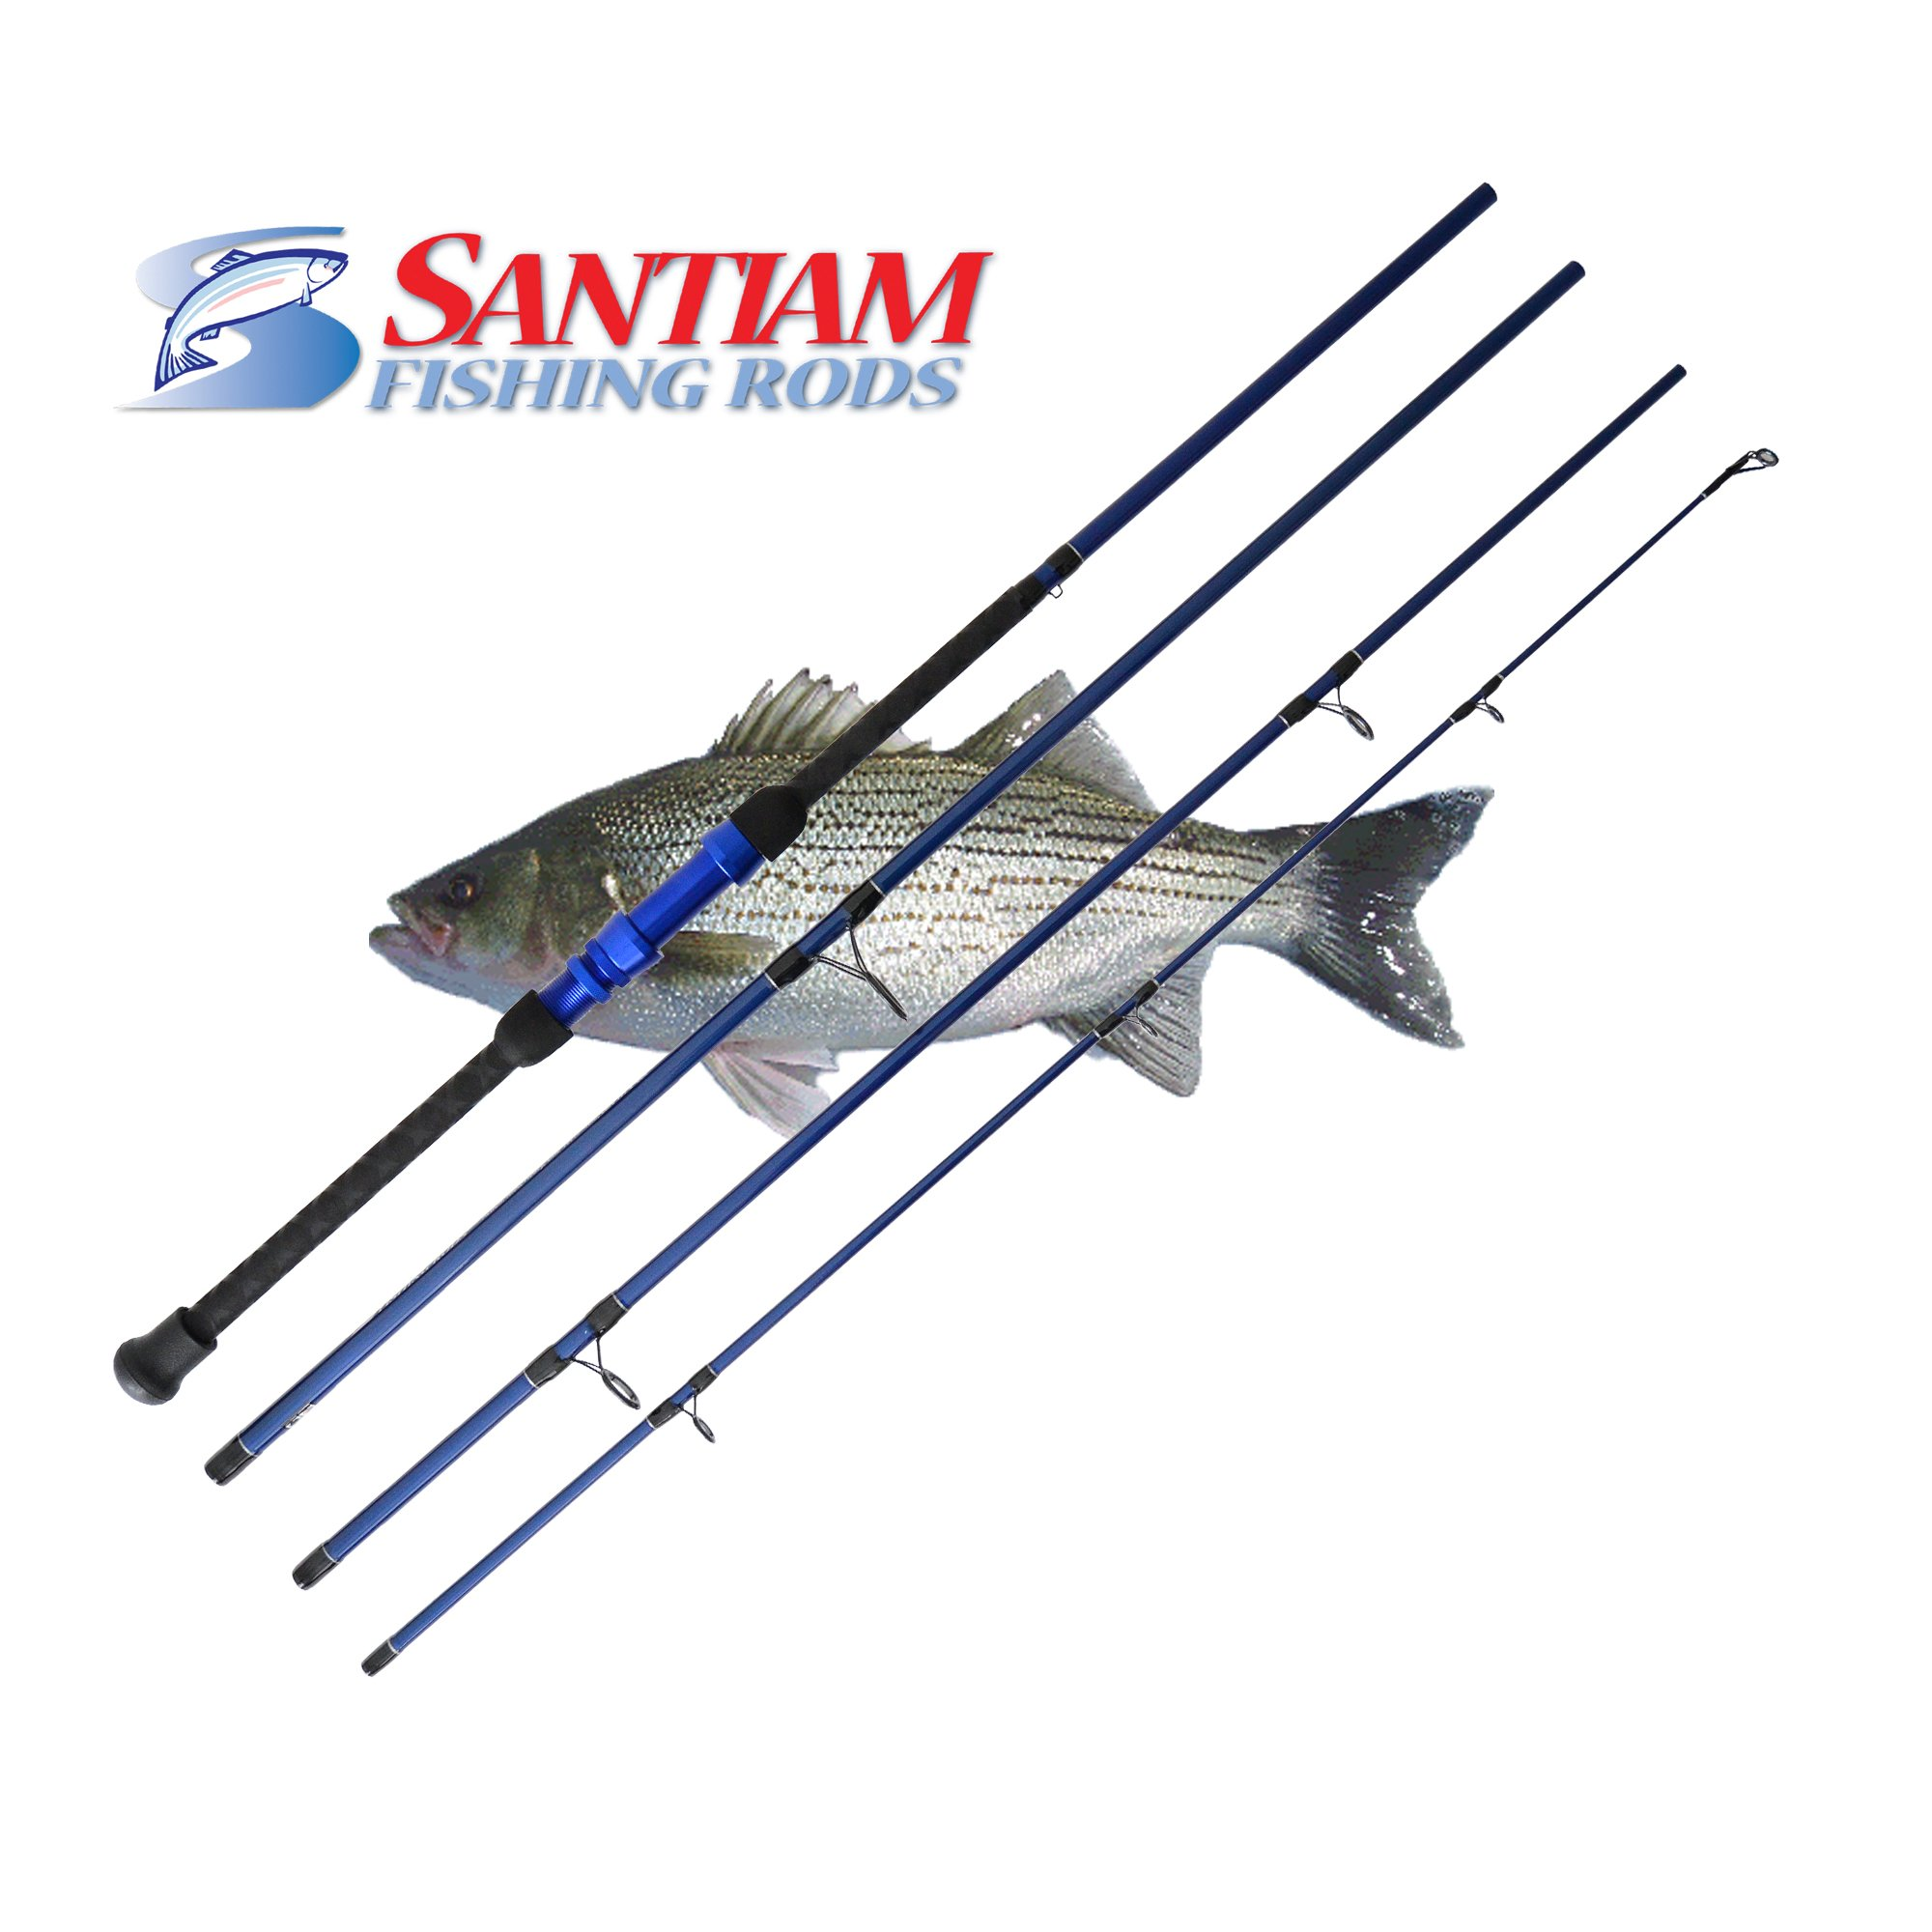 Santiam Fishing Rods Travel Rod 4 Piece 9'0'' 12-25lb Surf Rod